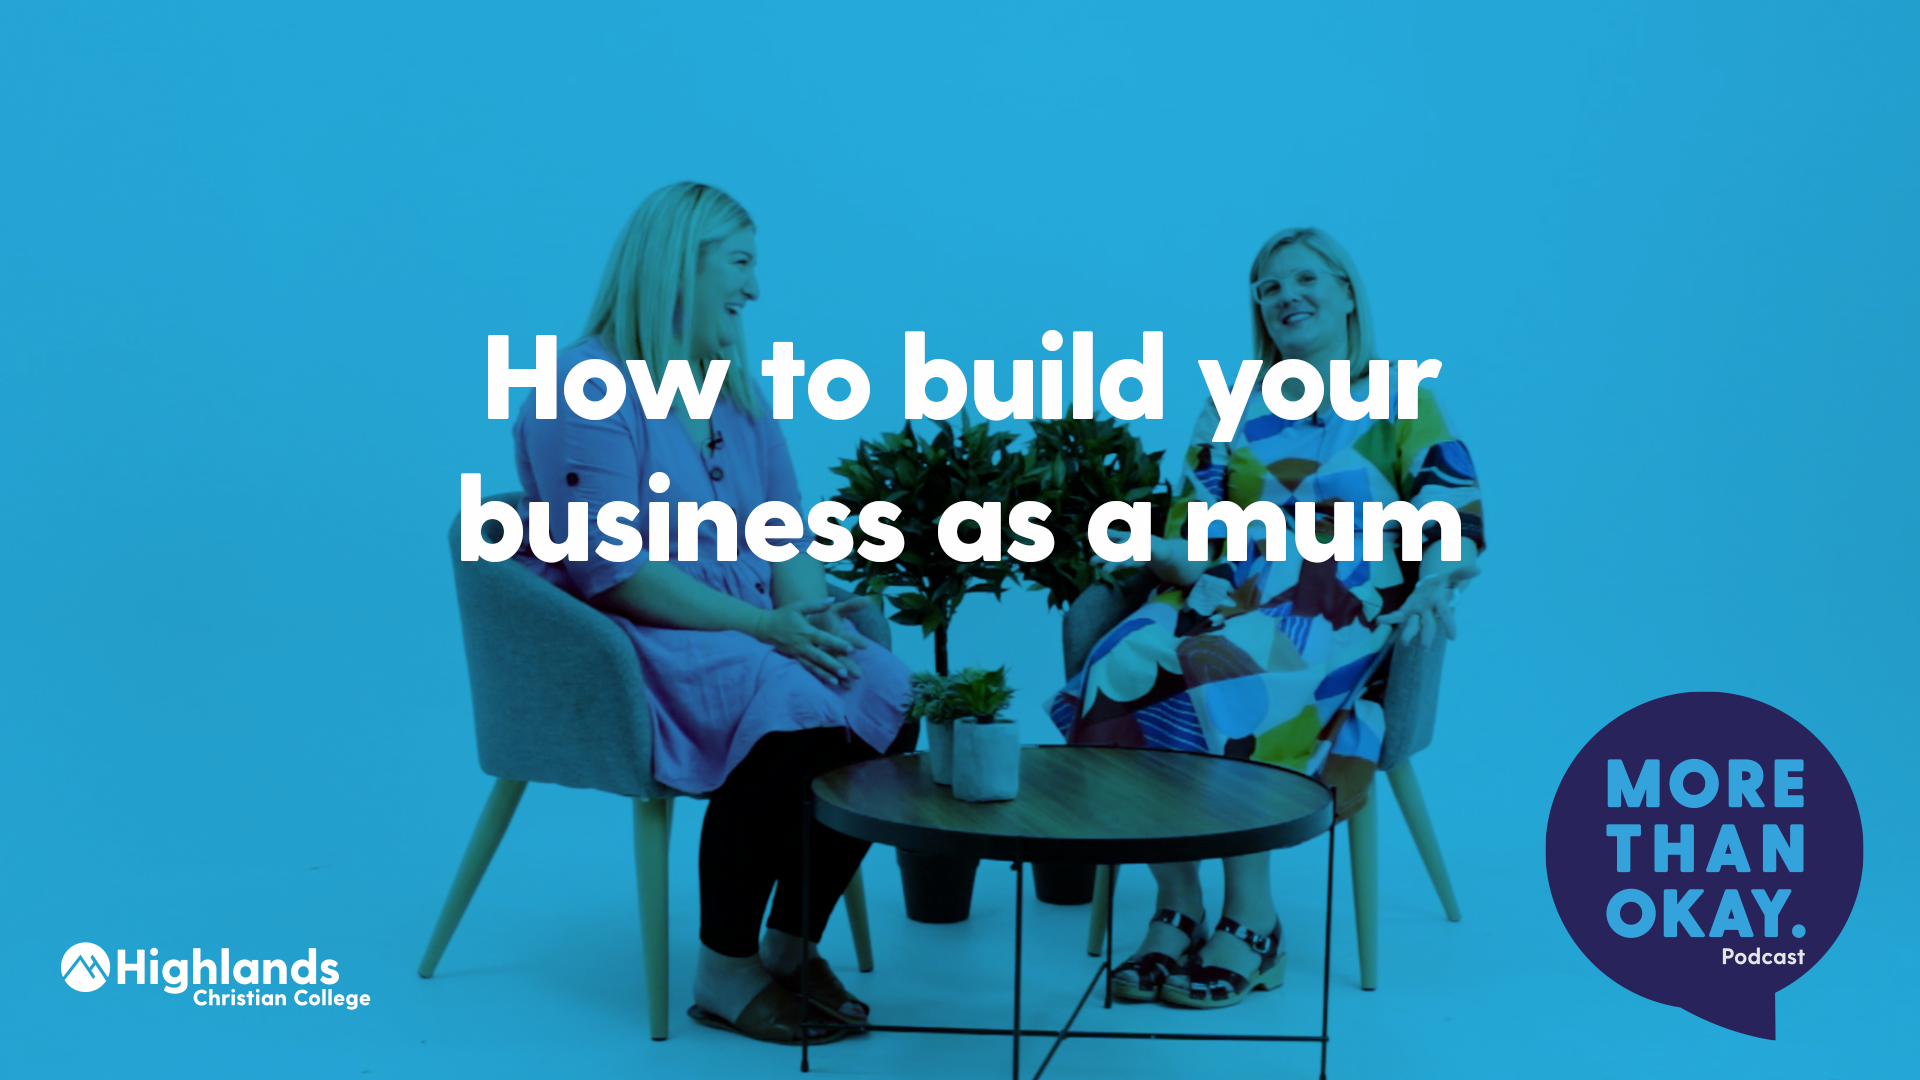 How to build your business as a mum